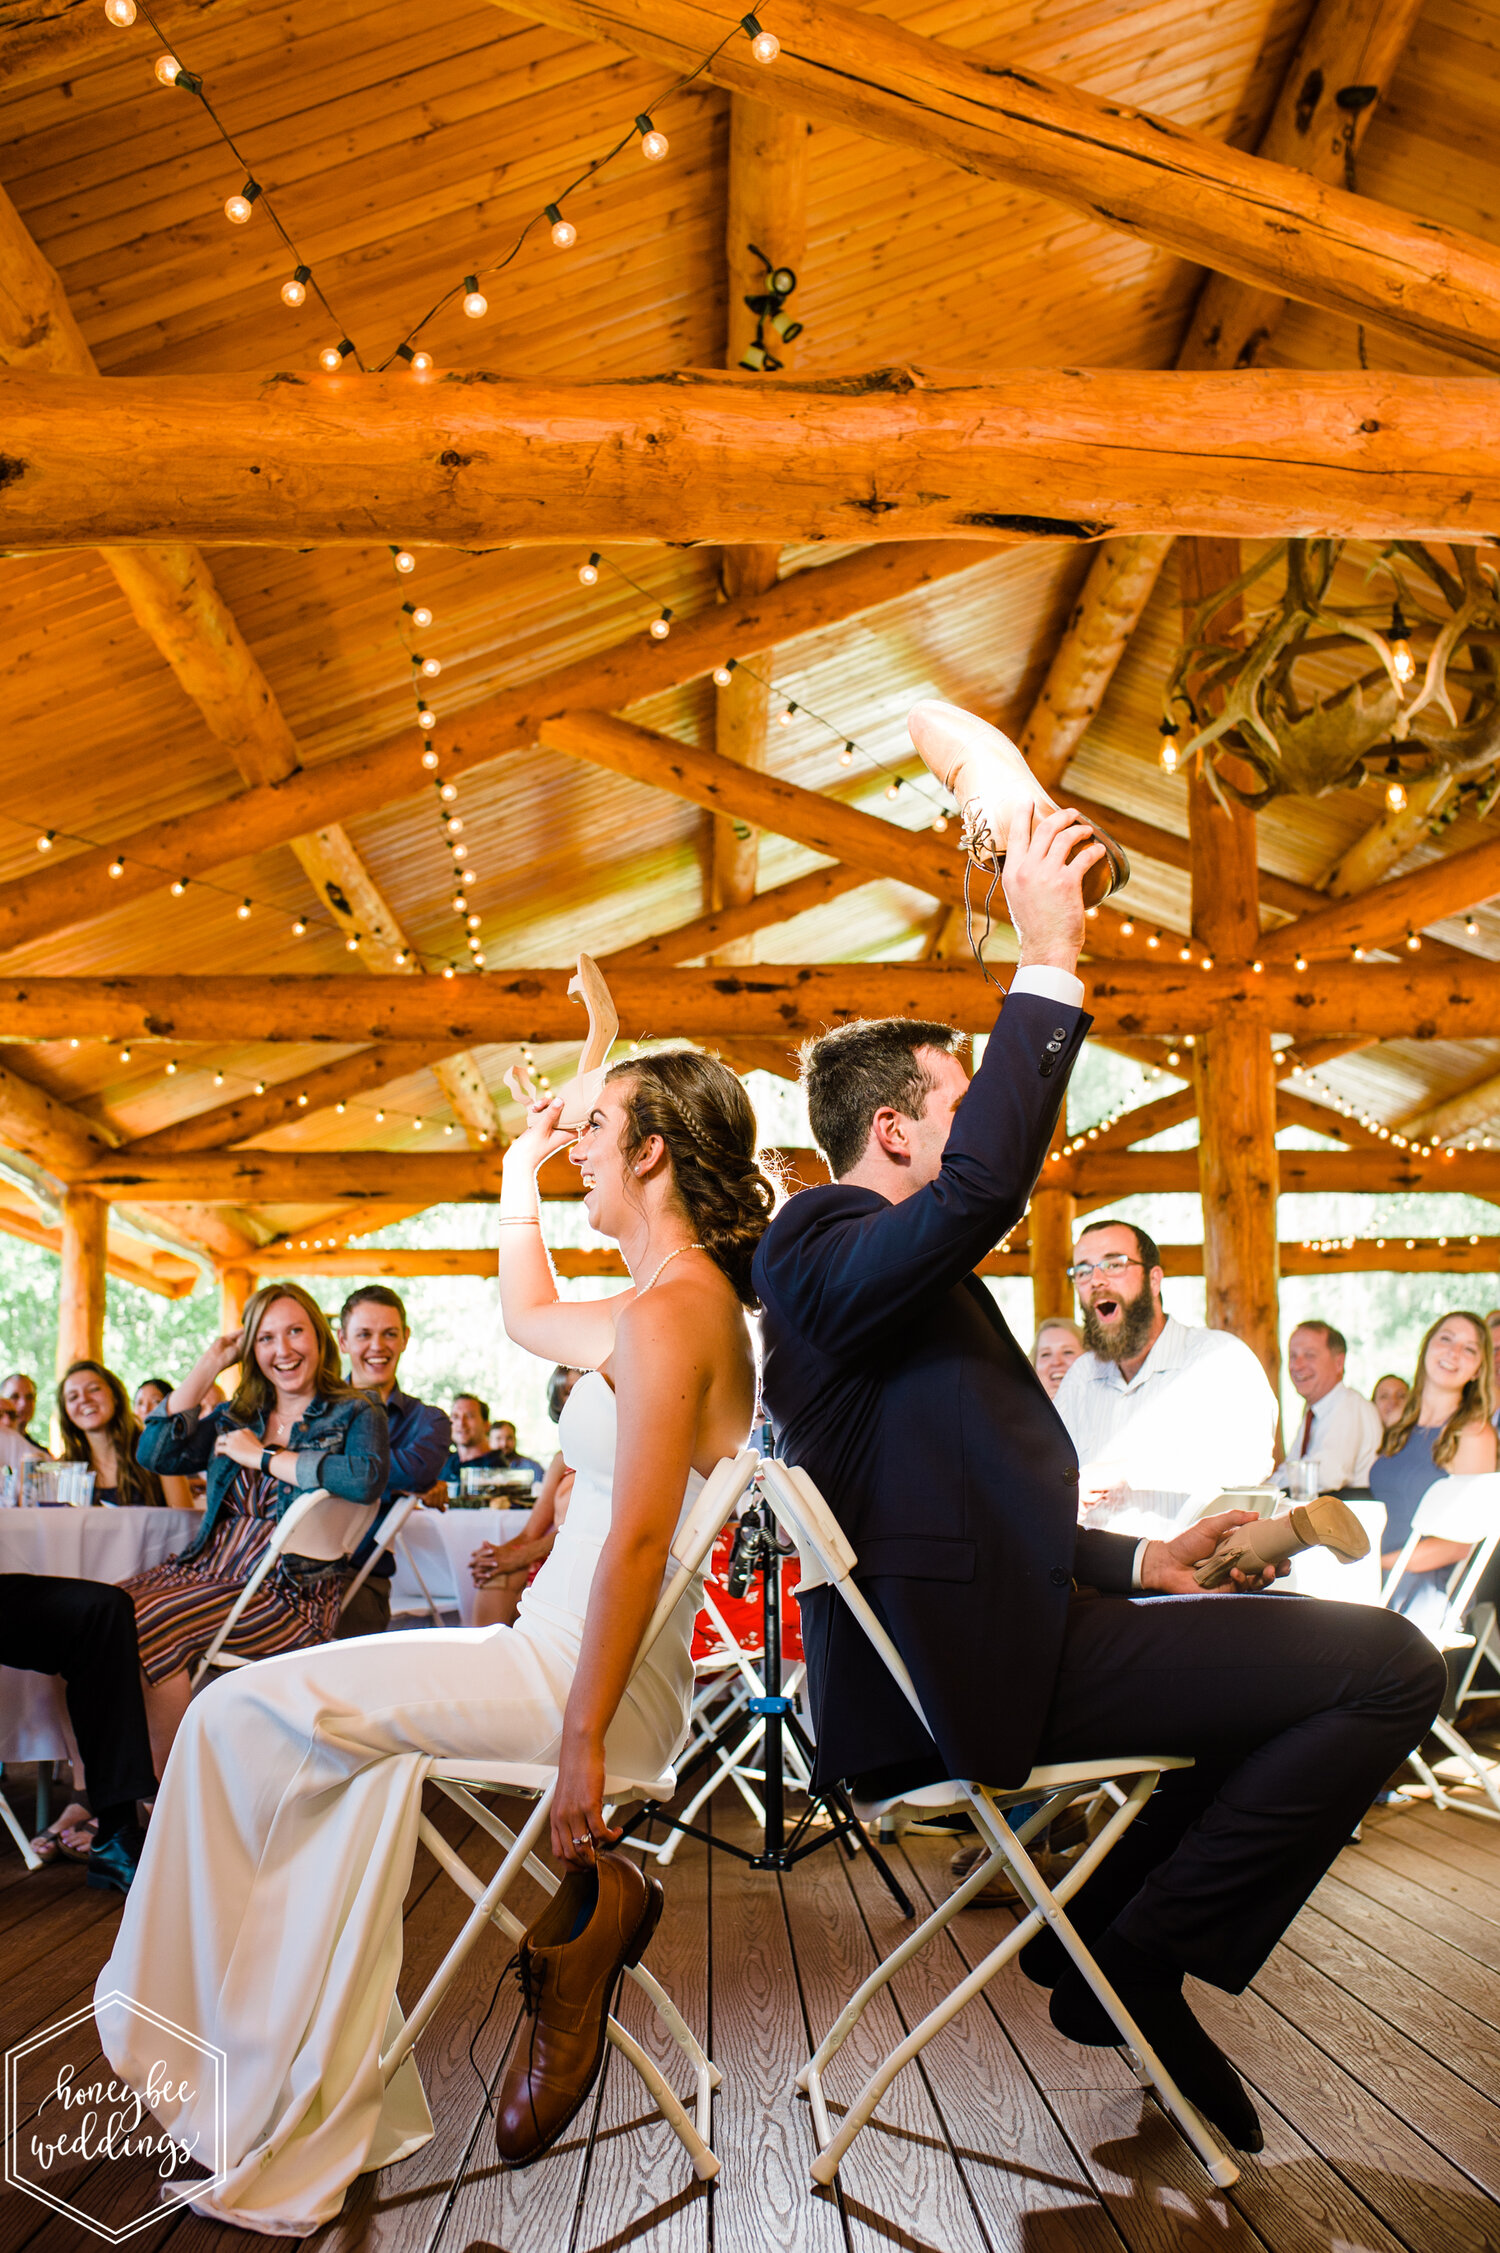 125Glacier National Park Wedding_Glacier Outdoor Center_Honeybee Weddings_Anna & Seth_July 21, 2019-2211.jpg